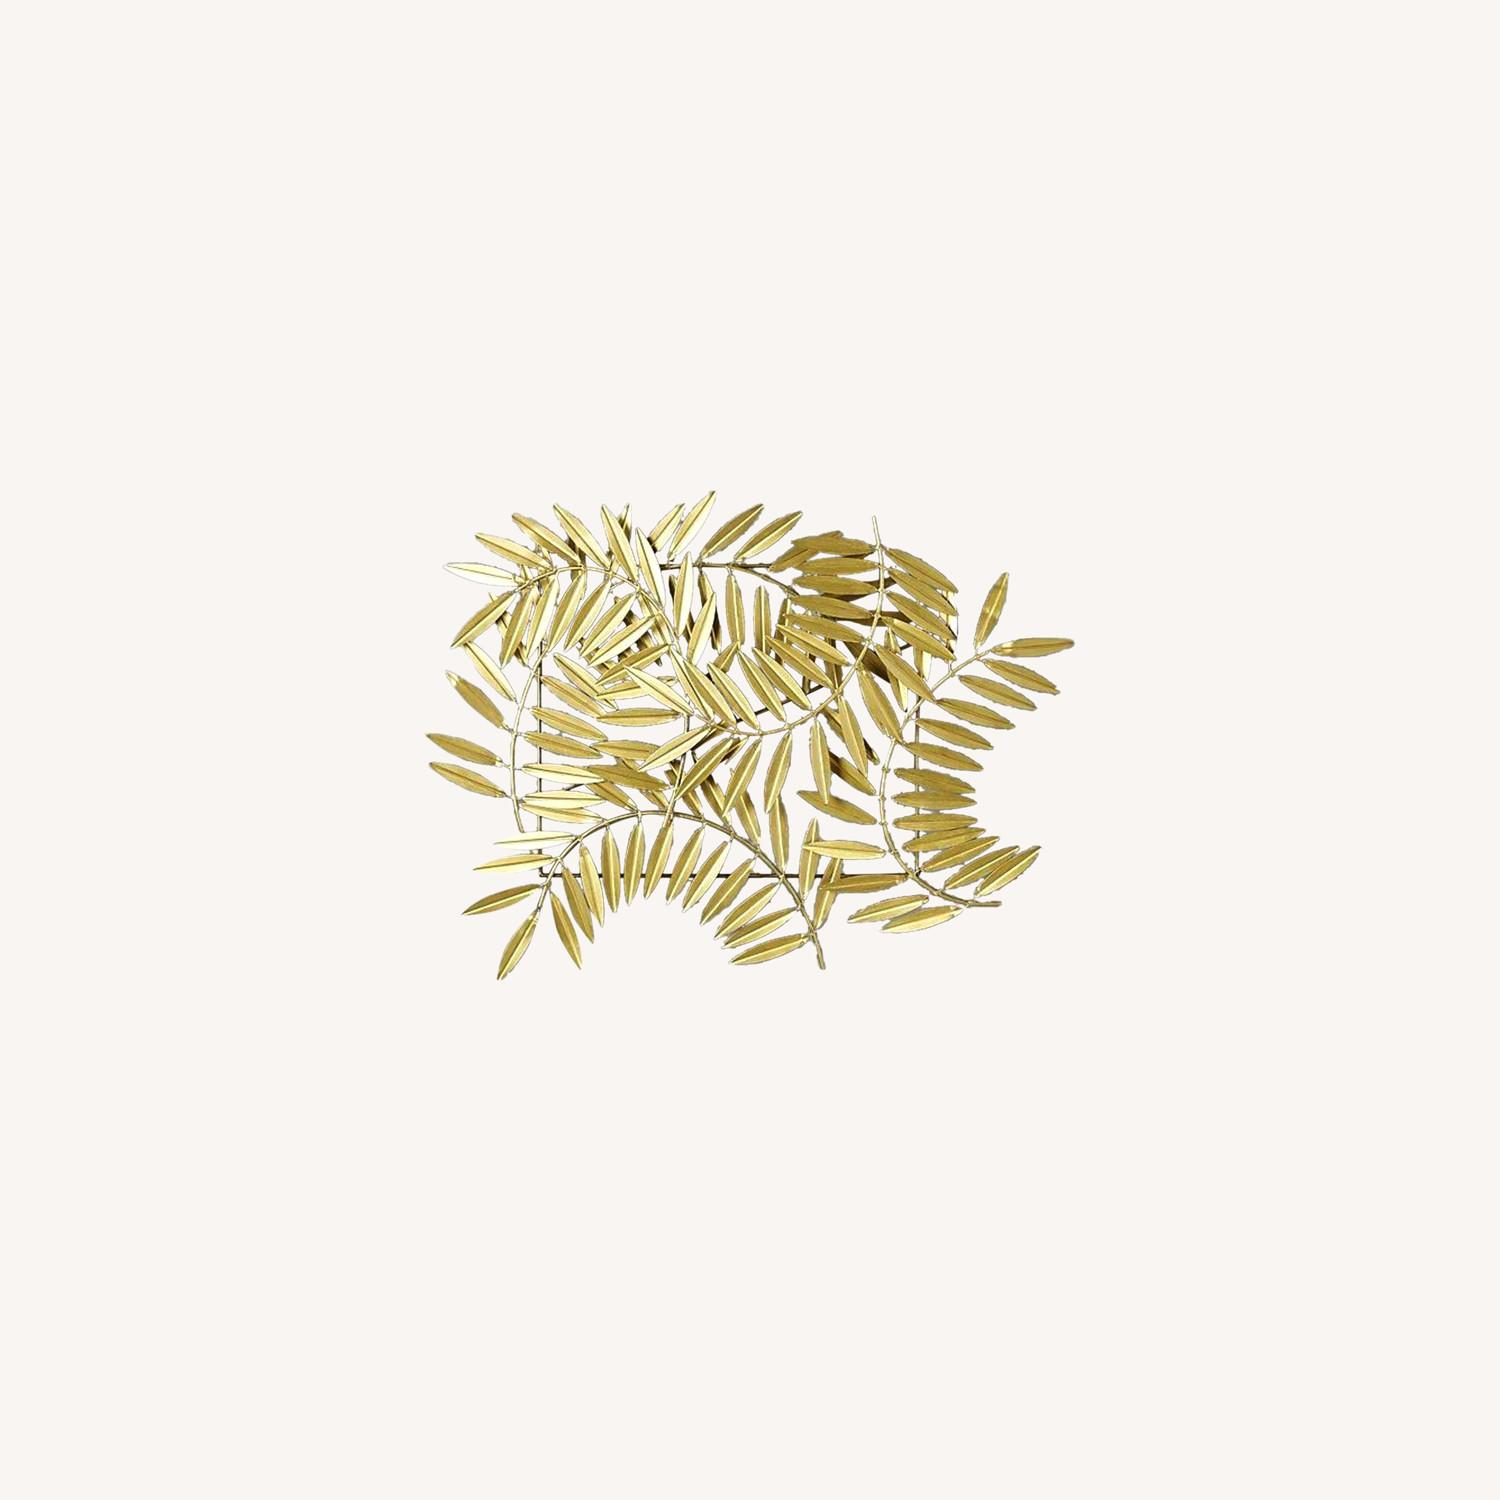 CB2 Ceres Leaves Wall Decor Gold - image-0